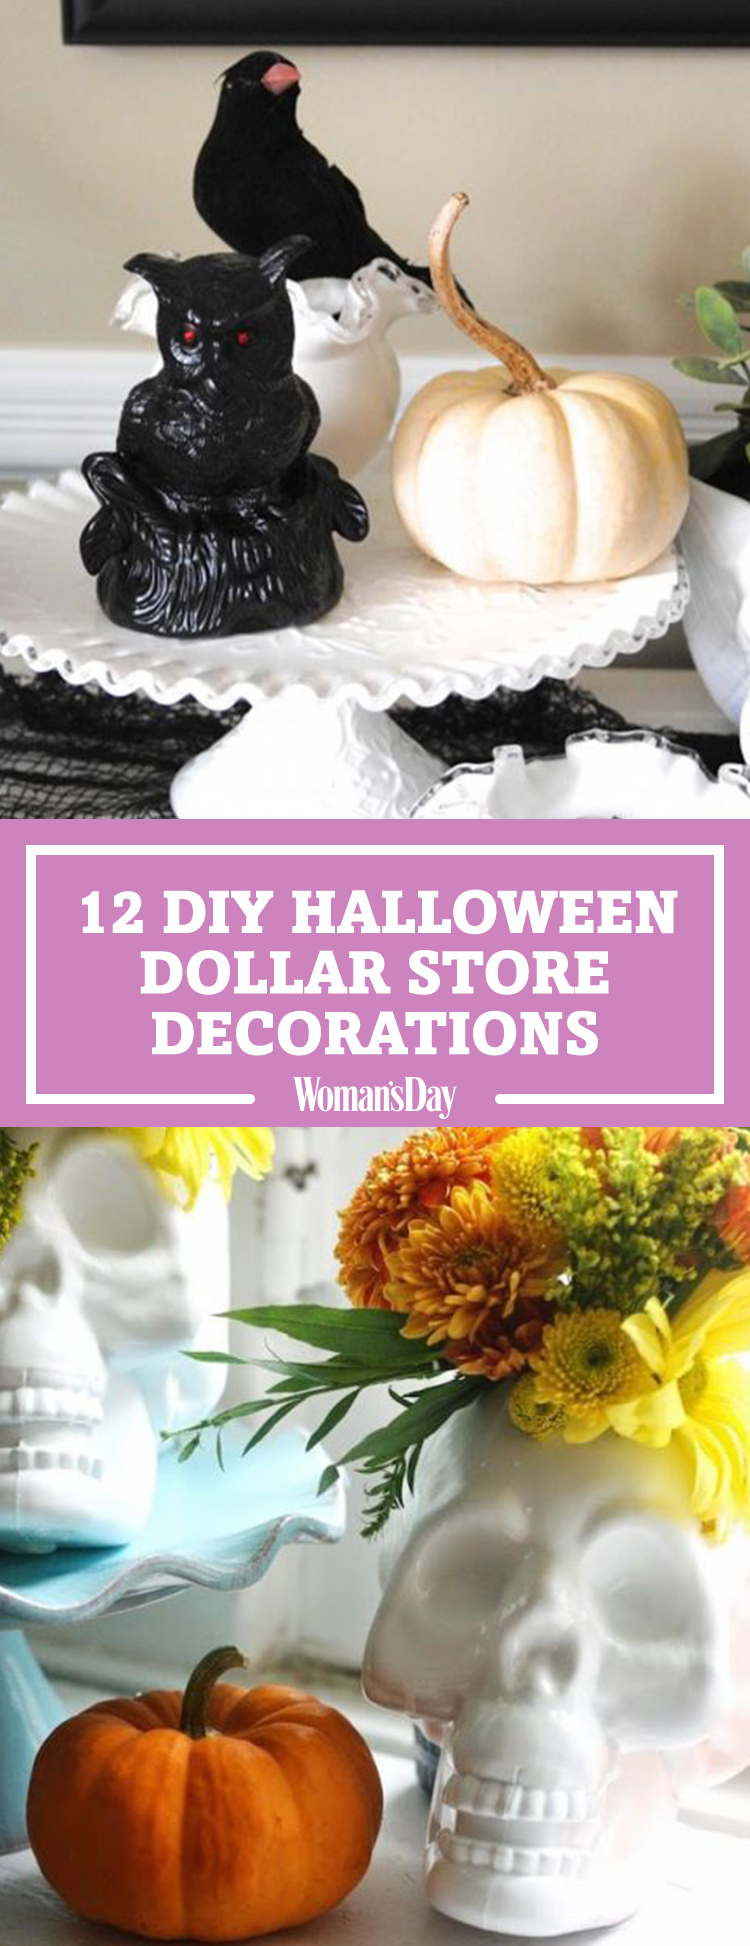 12 easy dollar store halloween decorations dollar store Halloween decoration diy cheap